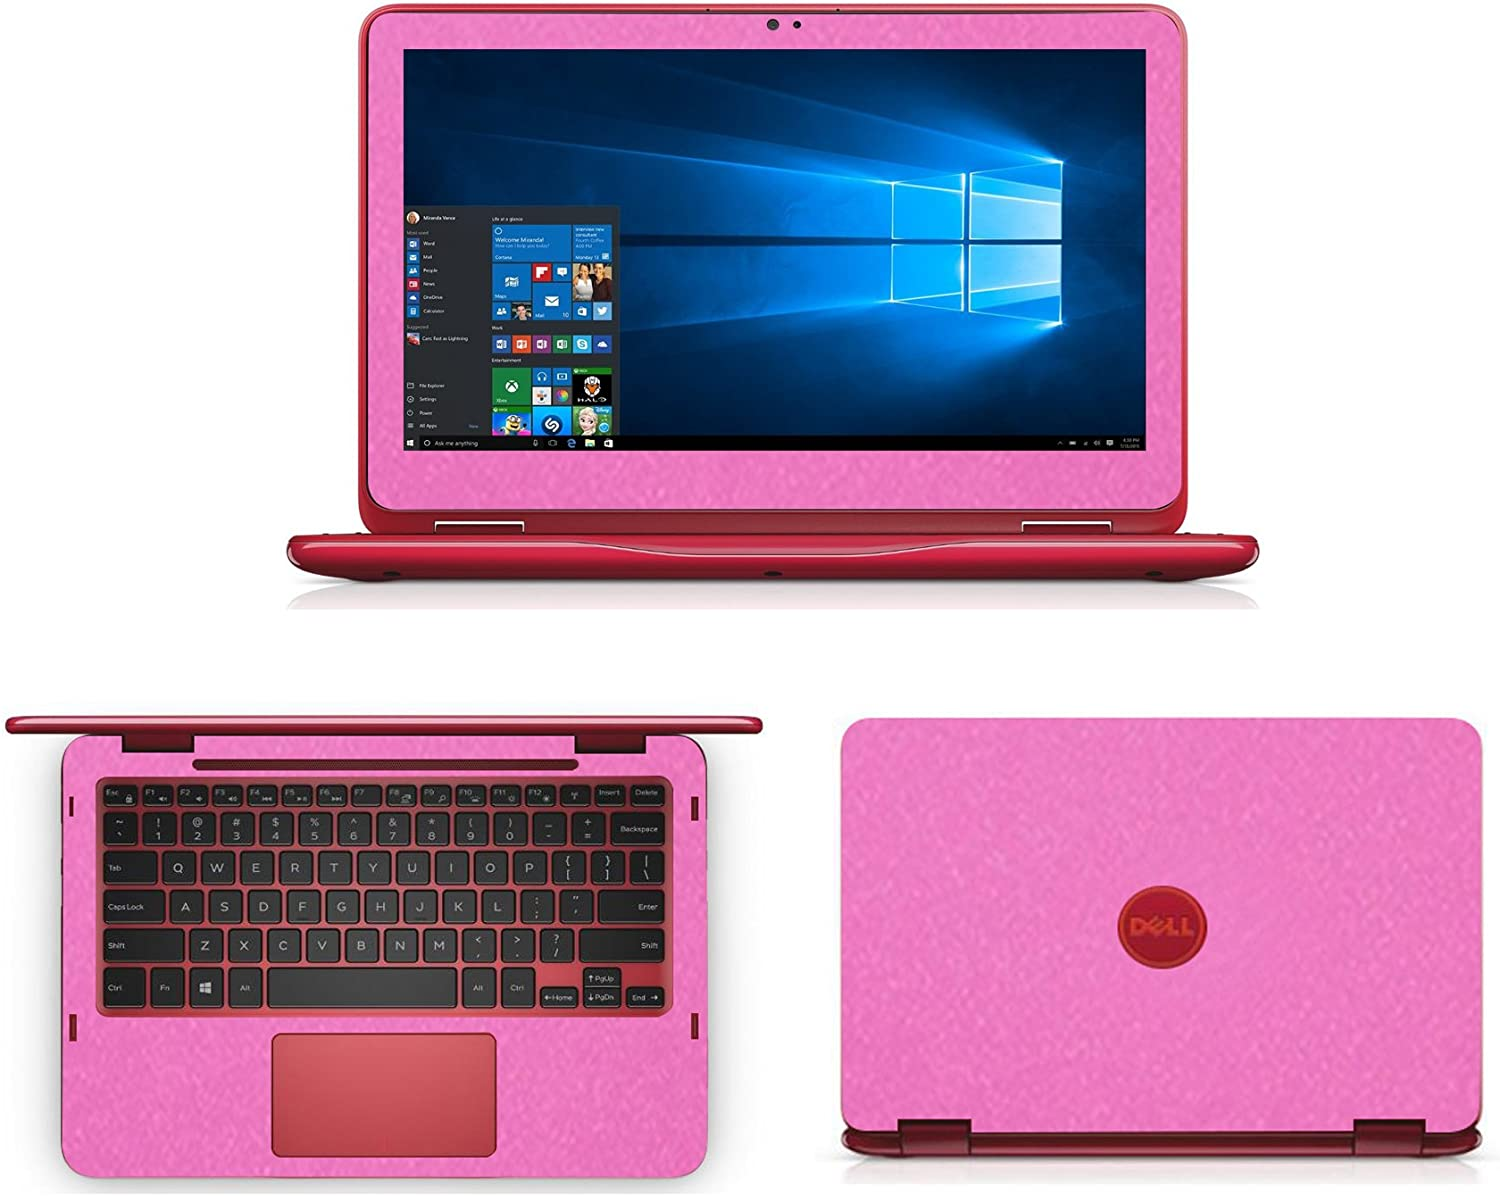 Sparkling Pink Fiber skin decal wrap skin Case for Dell inspiron 11 3000 series 3168 3169 11.6